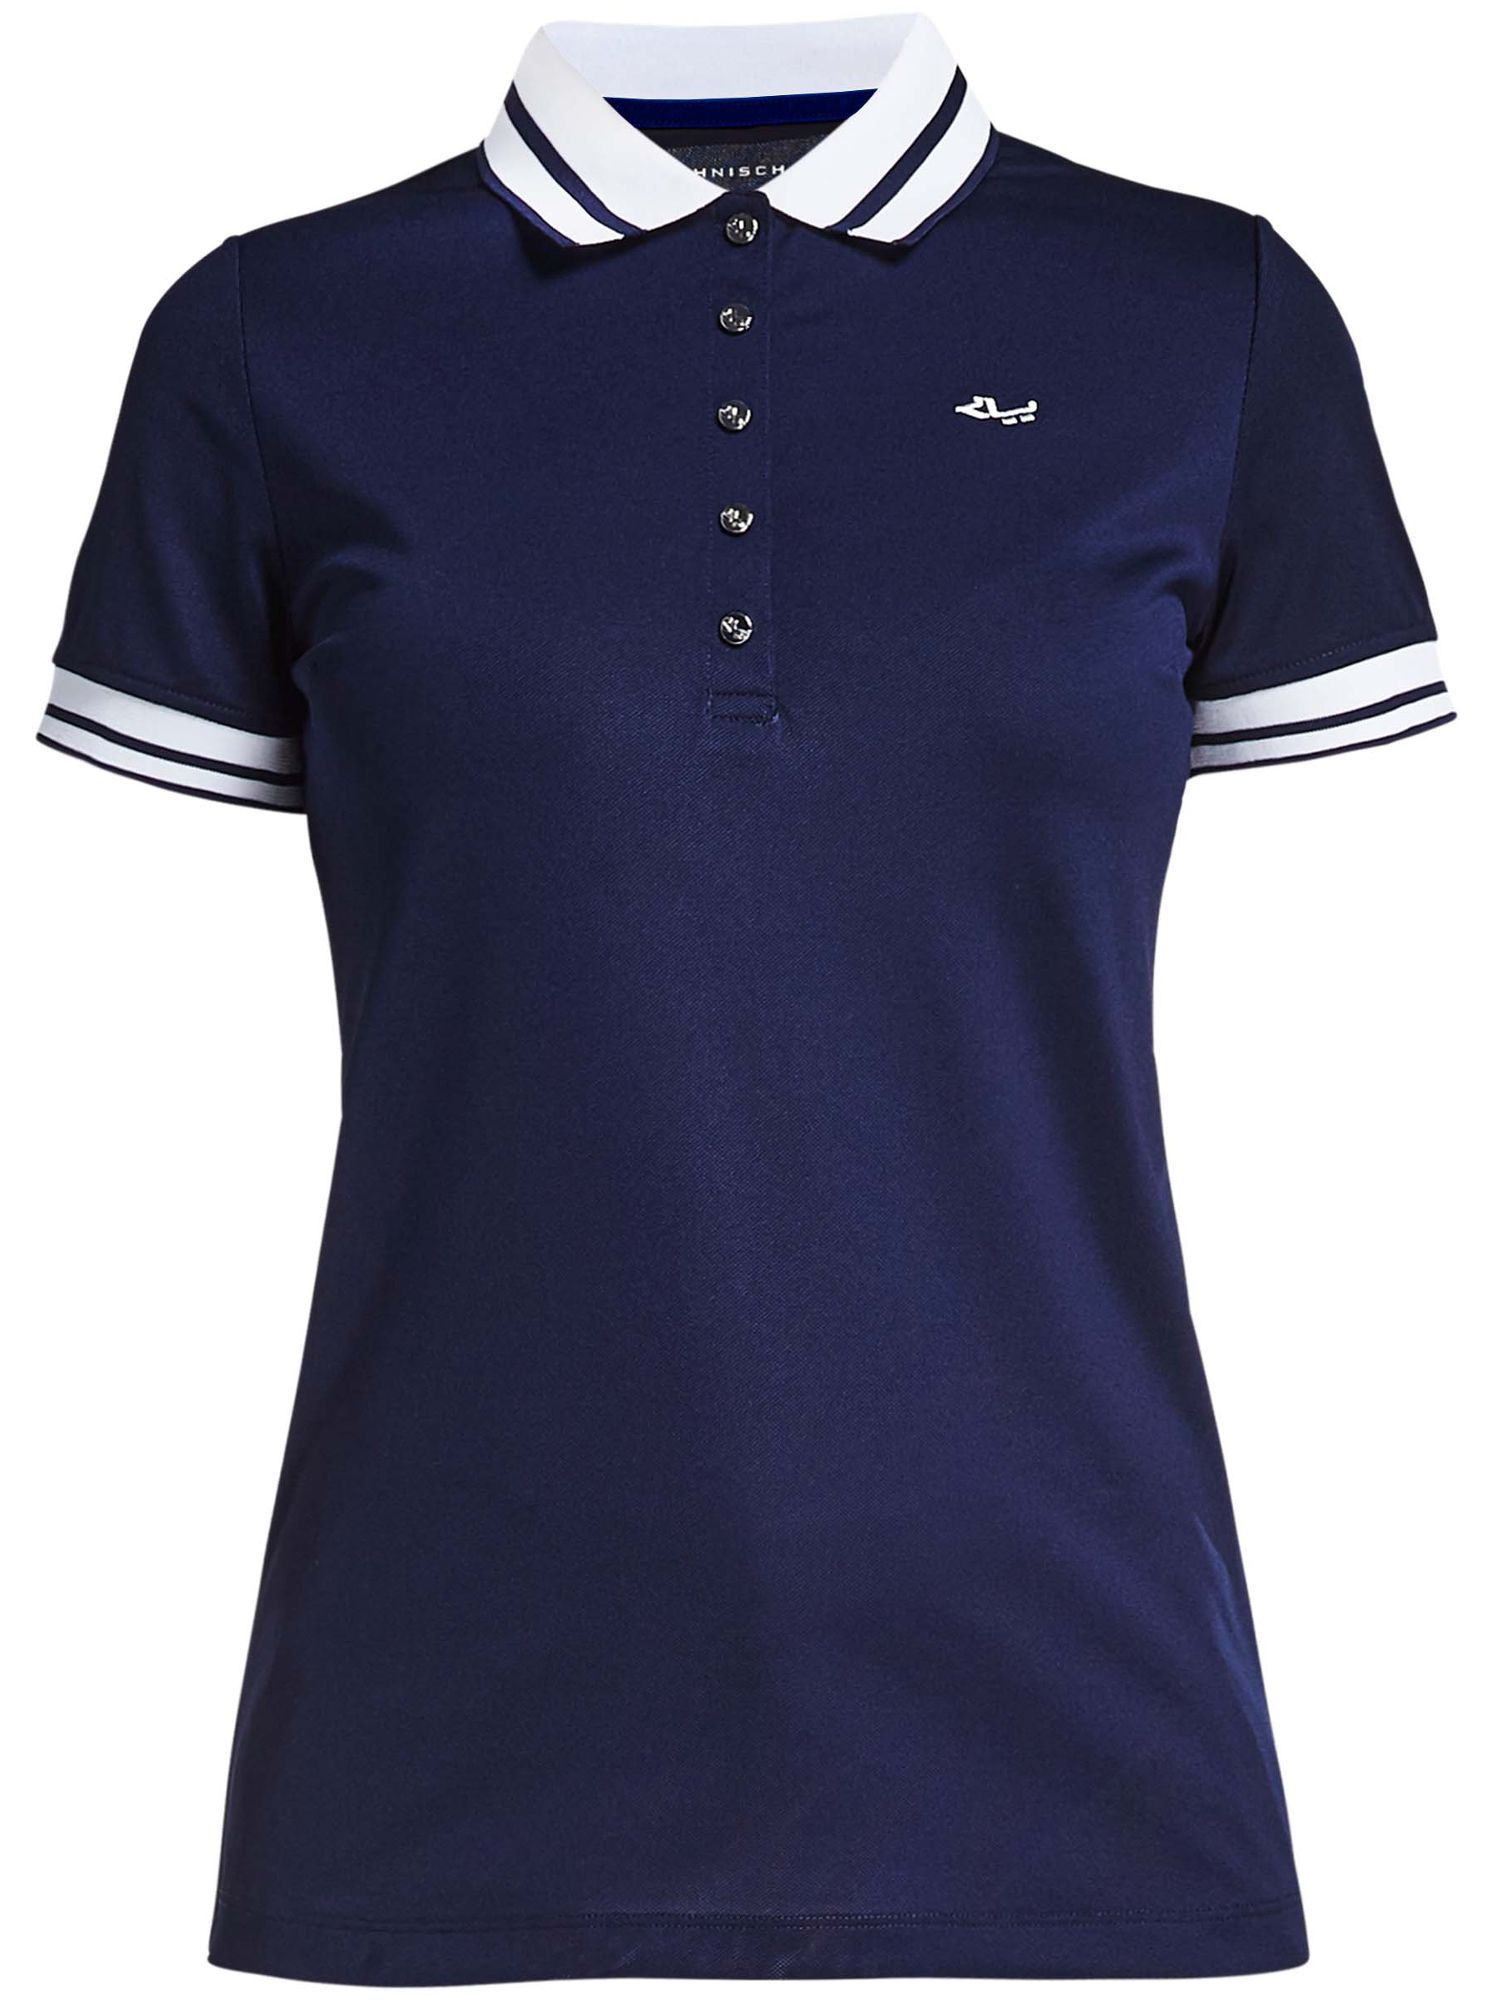 Rohnisch Pim Short Sleeved Polo, Blue